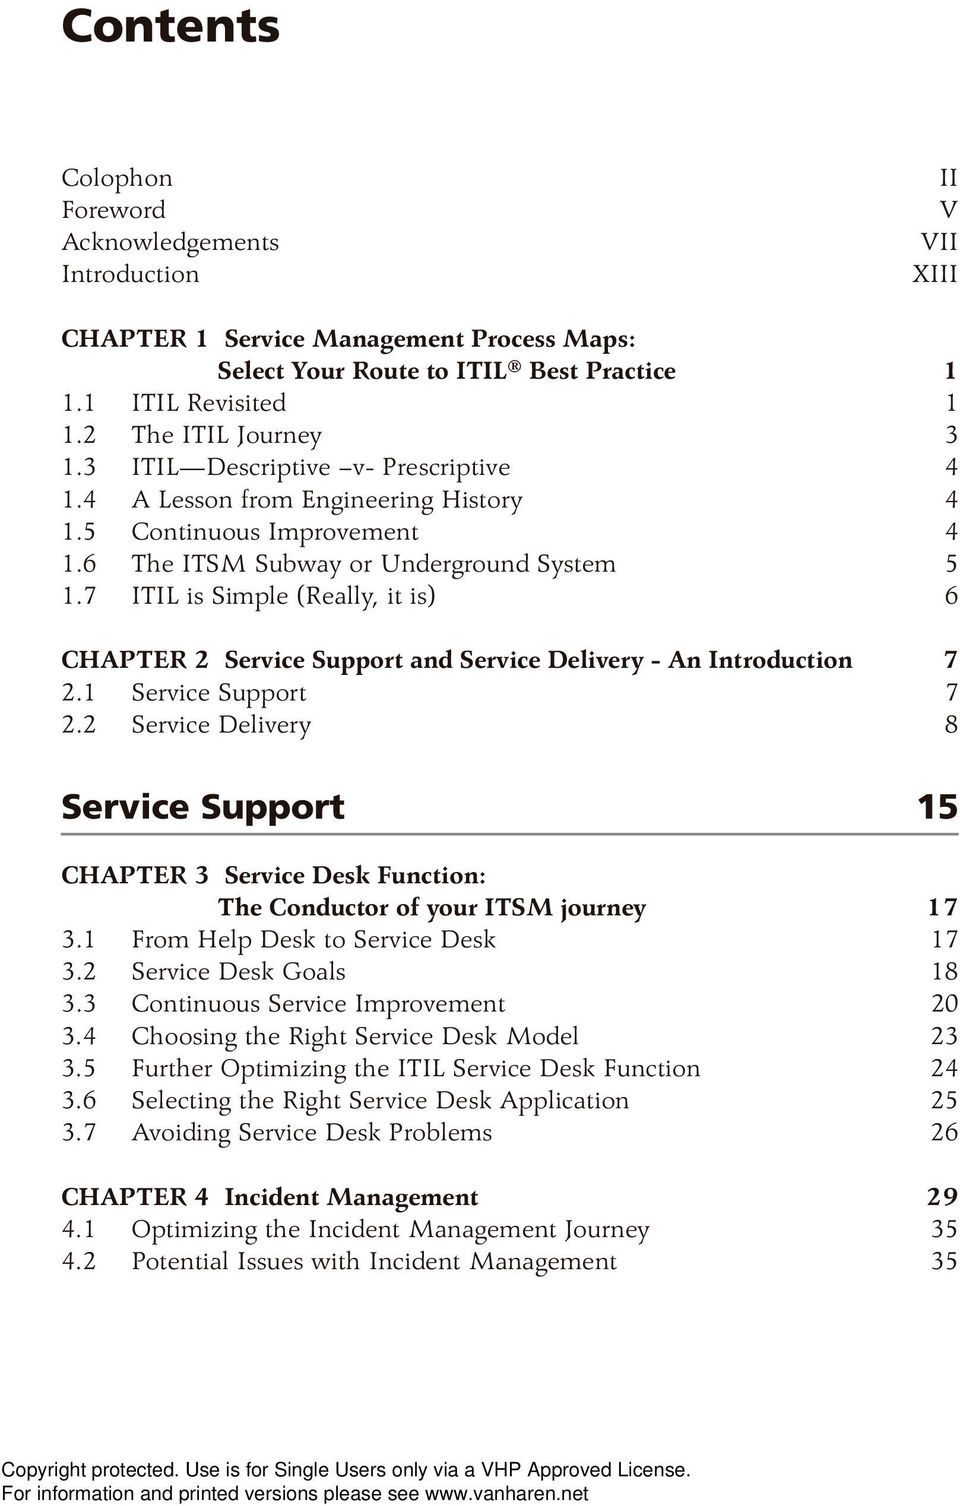 7 ITIL is Simple (Really, it is) 6 CHAPTER 2 Service Support and Service Delivery - An Introduction 7 2.1 Service Support 7 2.